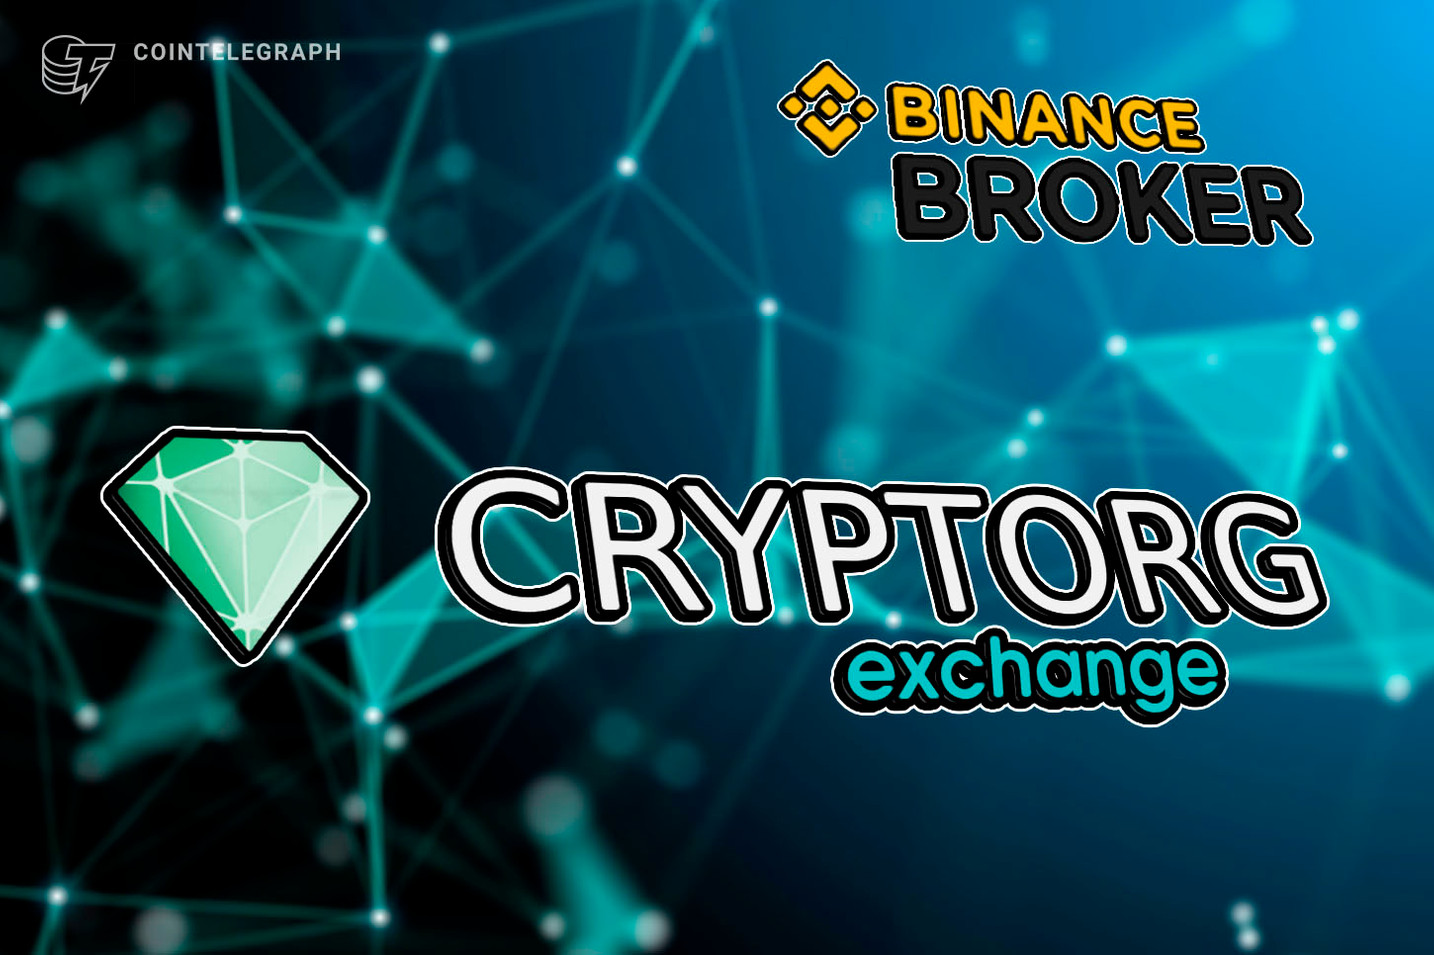 Trade Spot and High Liquidity Futures on Cryptorg Exchanges